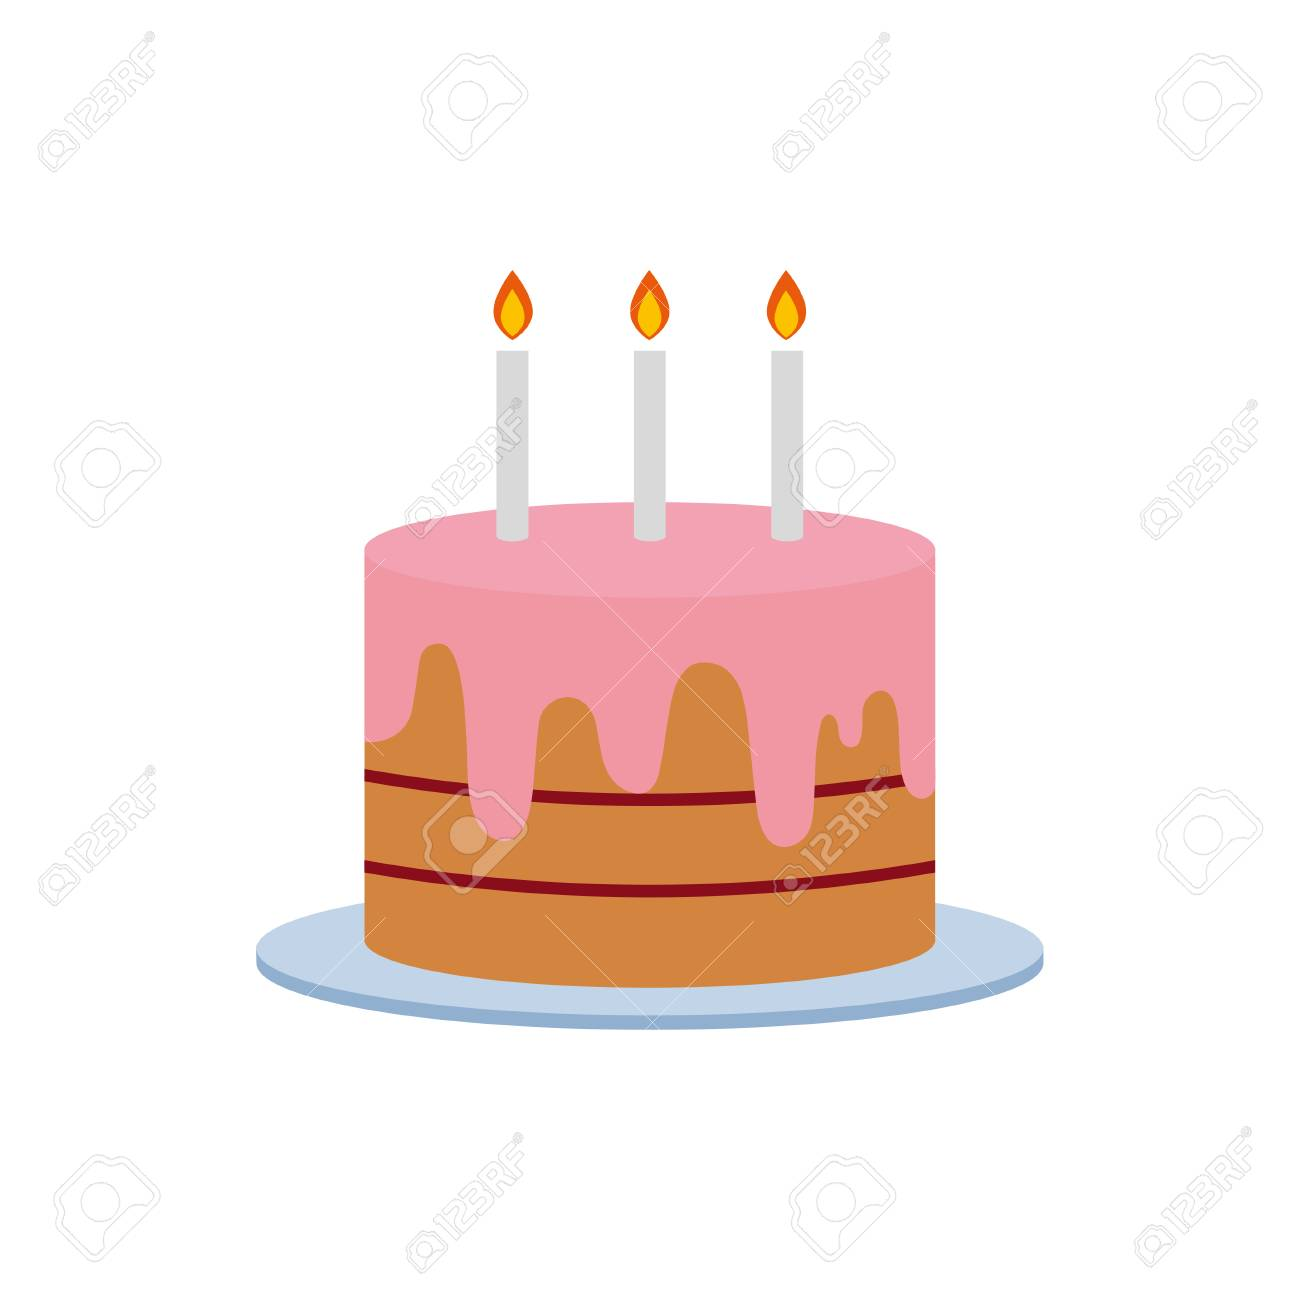 Birthday Cake Vector Illustration With Candles On White Background